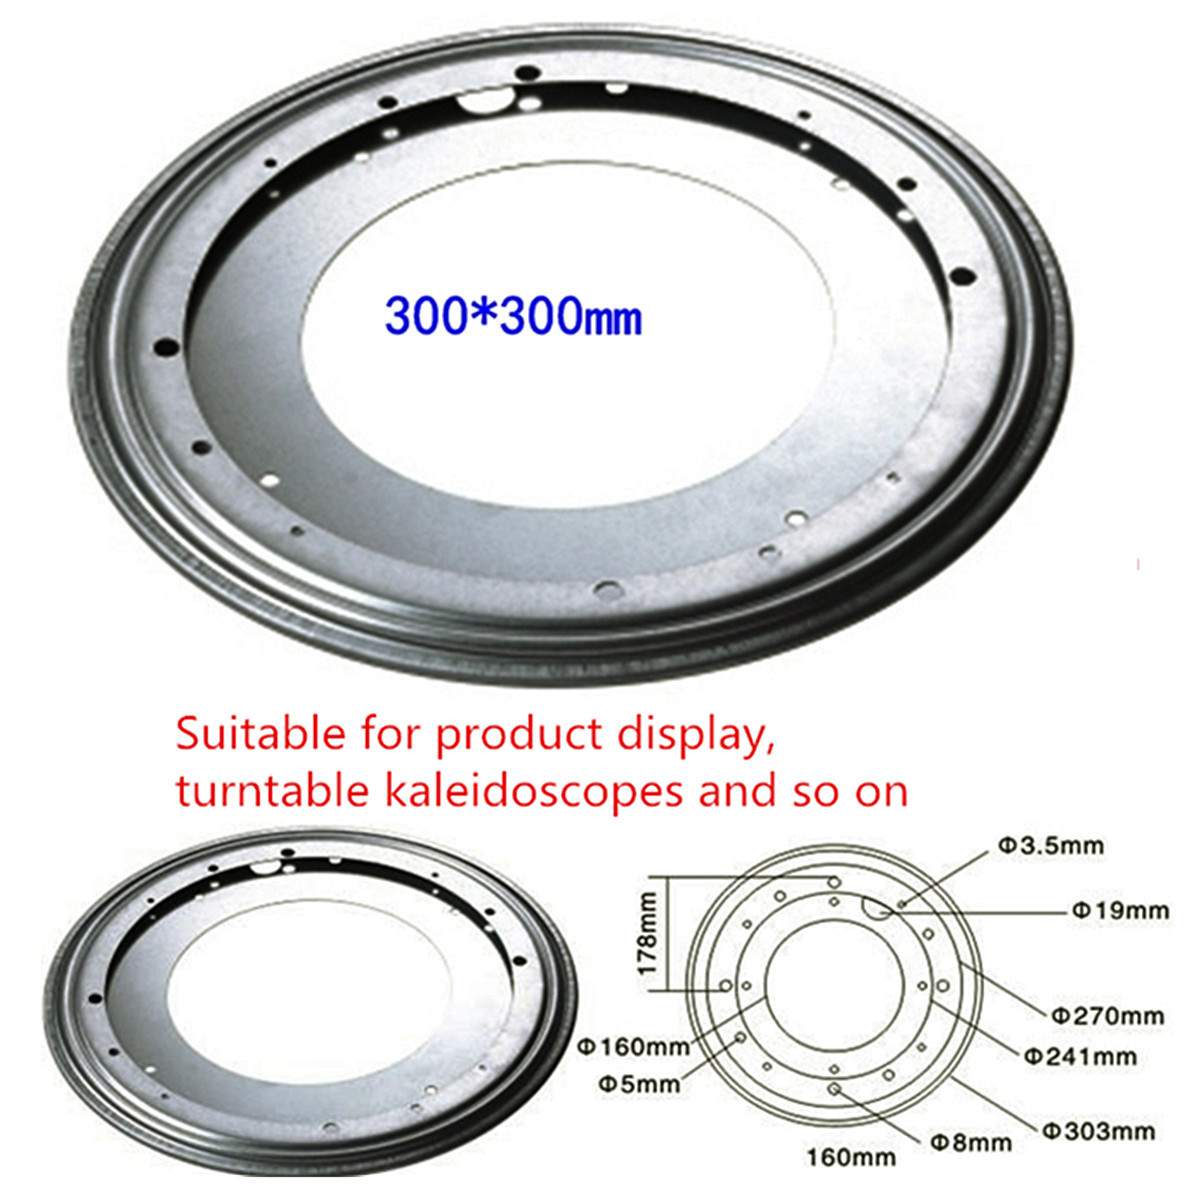 Heavy   Metal 3 SIze Bearing Rotating Swivel-Turntable Plate For TV Rack Desk Table Smoothly Square/Round For Corner Cabinets